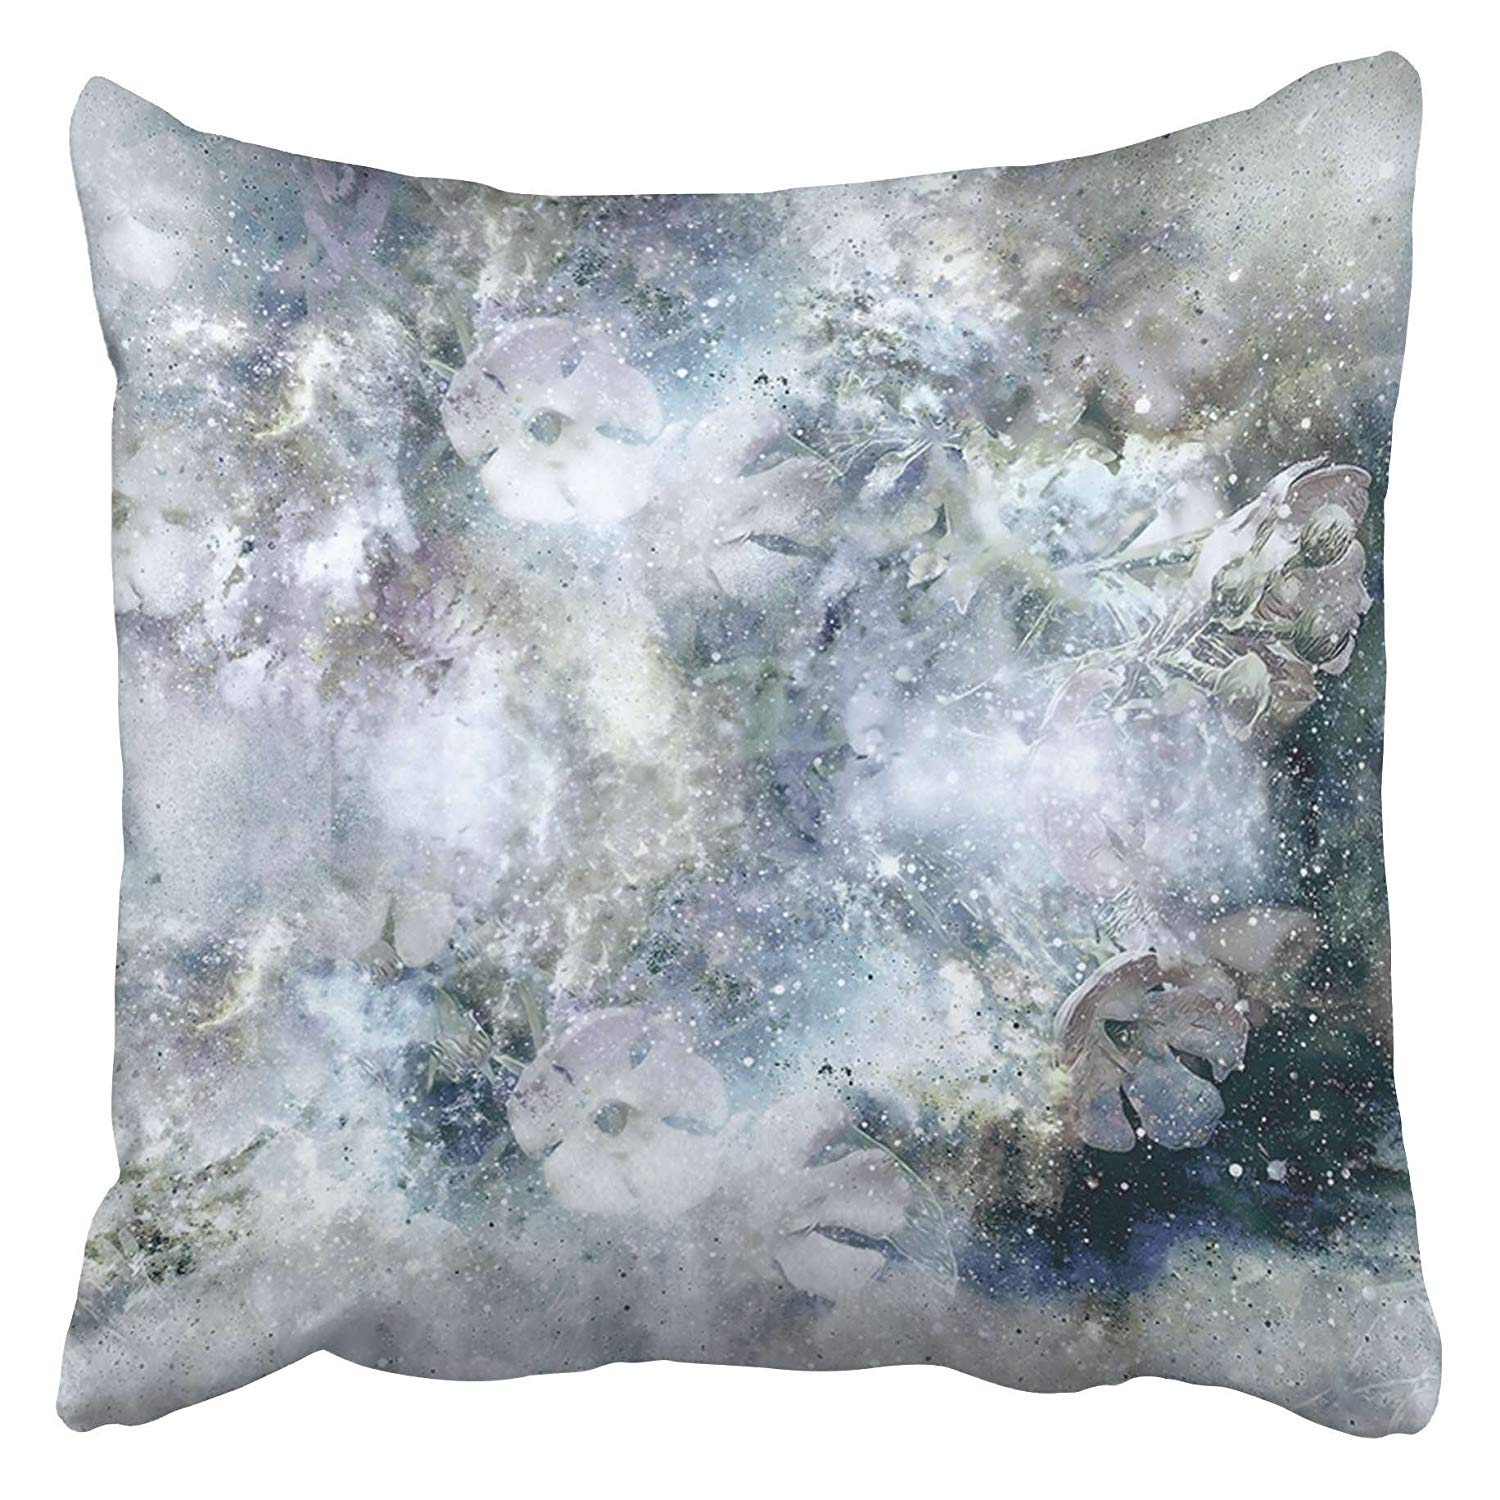 CMFUN Blue Beauty Flovers Freezed Under Ice Abstract Computer Collage Winter Motive Book Pillow Case Cushion Cover 18x18 inch